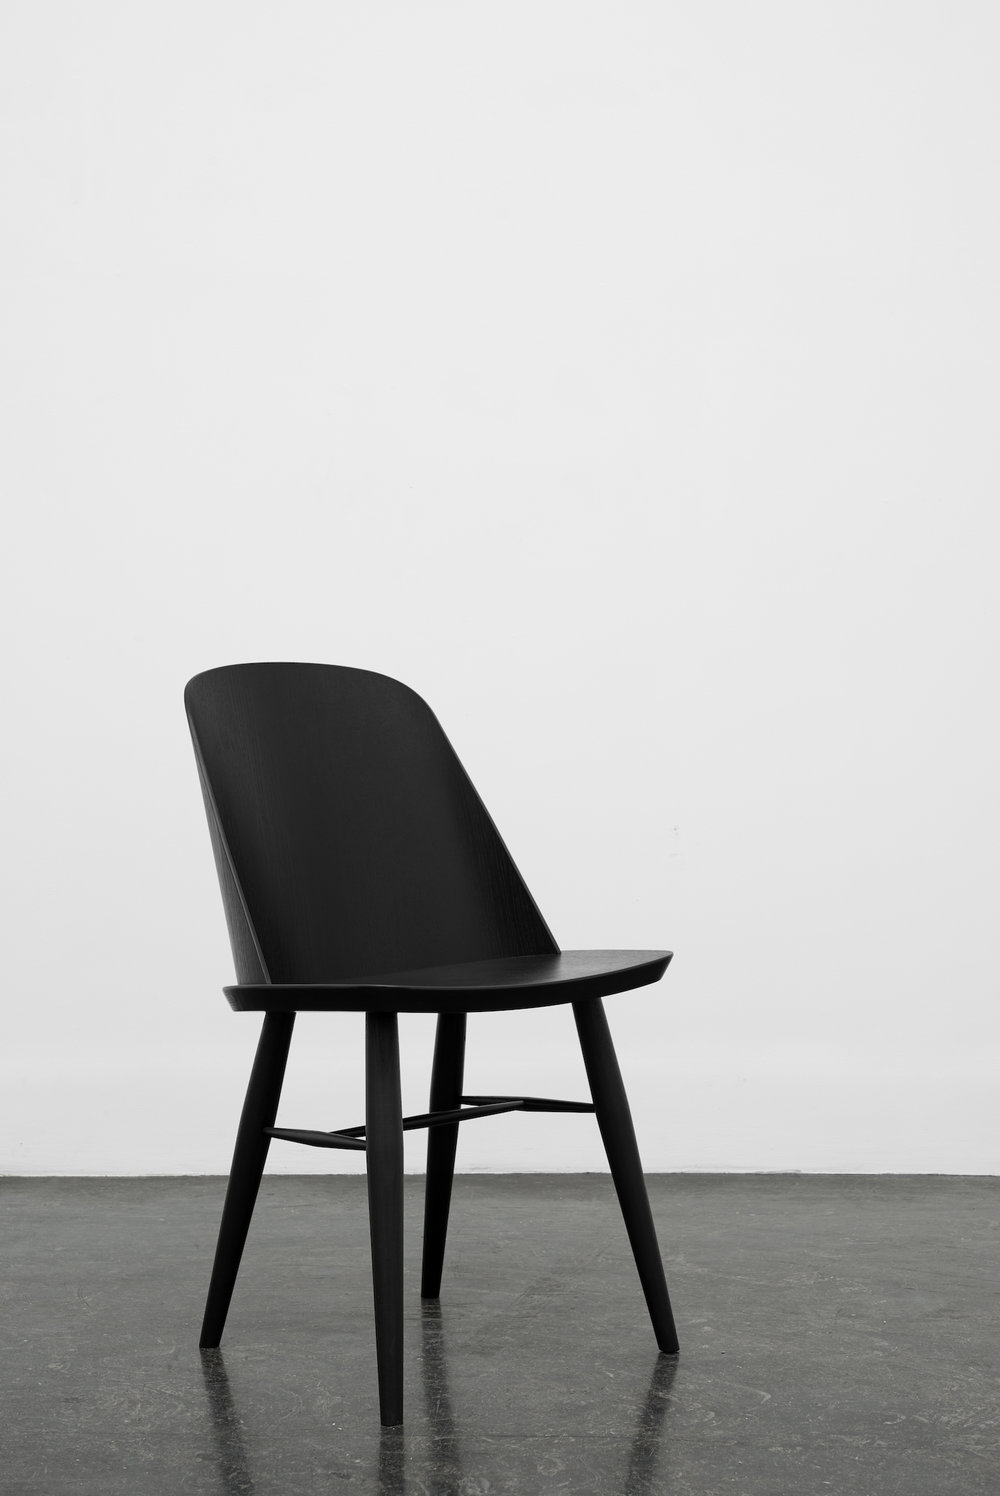 Synnes Chair designed by Falke Svatun